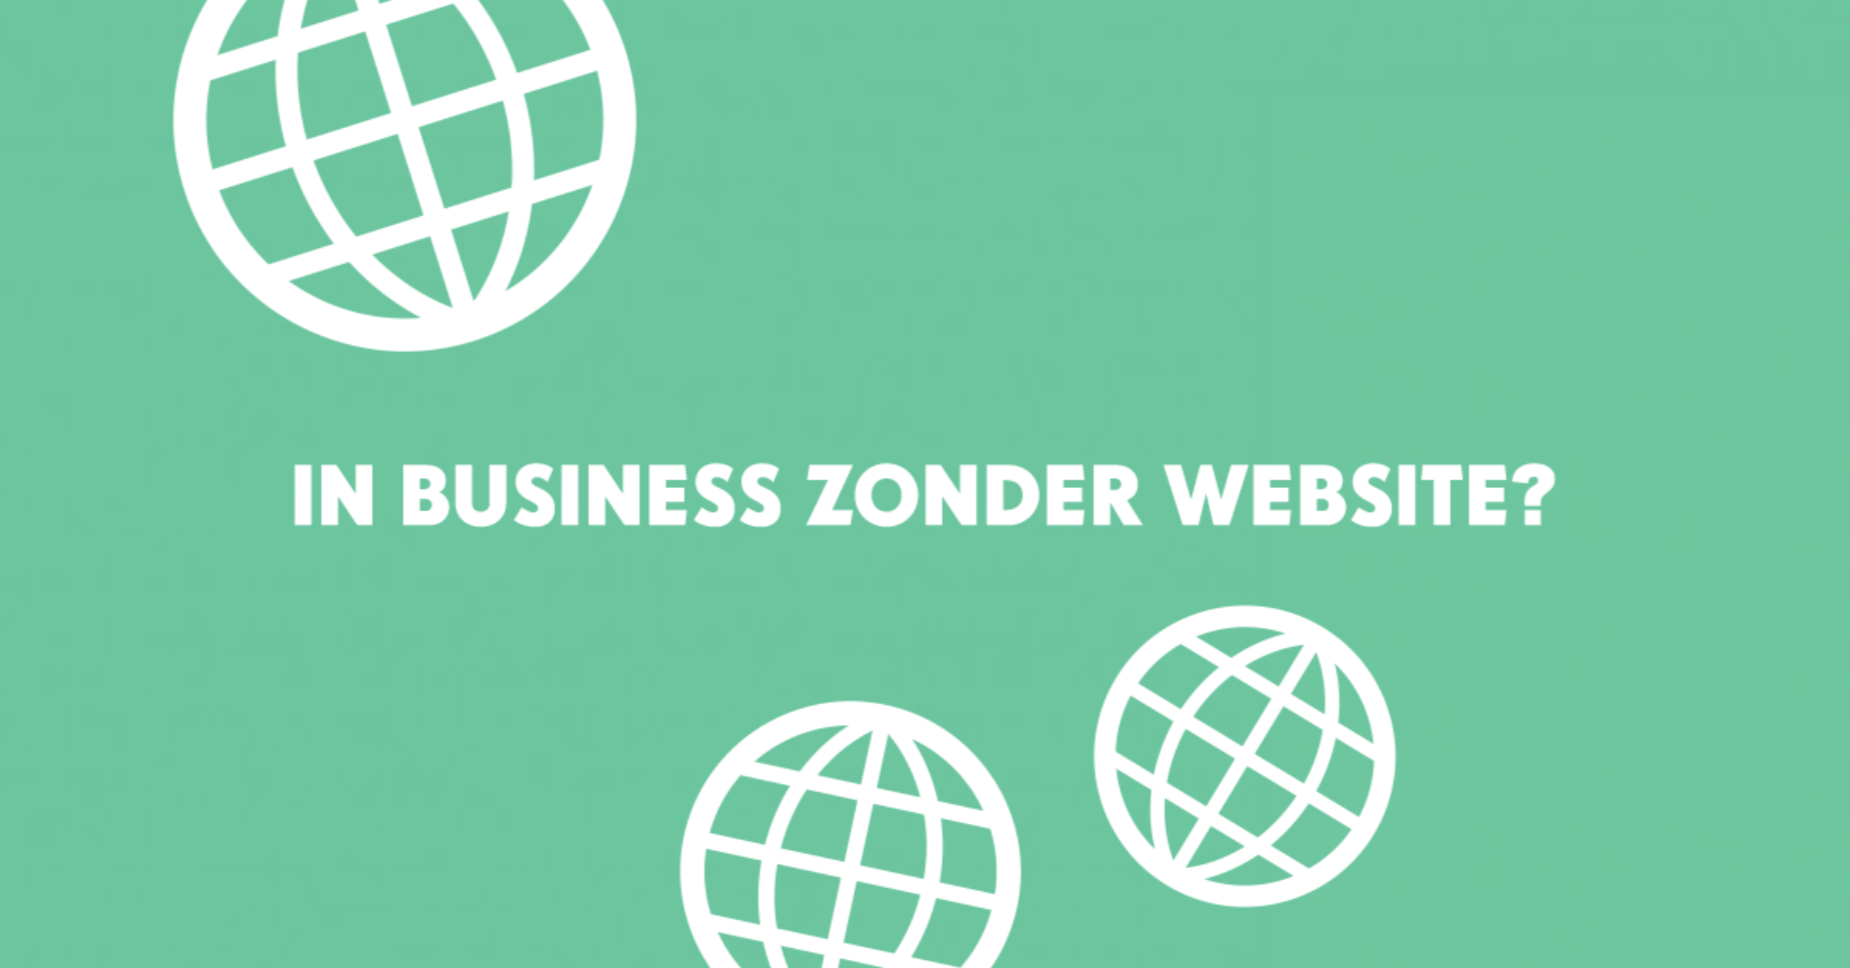 inbusinesszonderwebsite